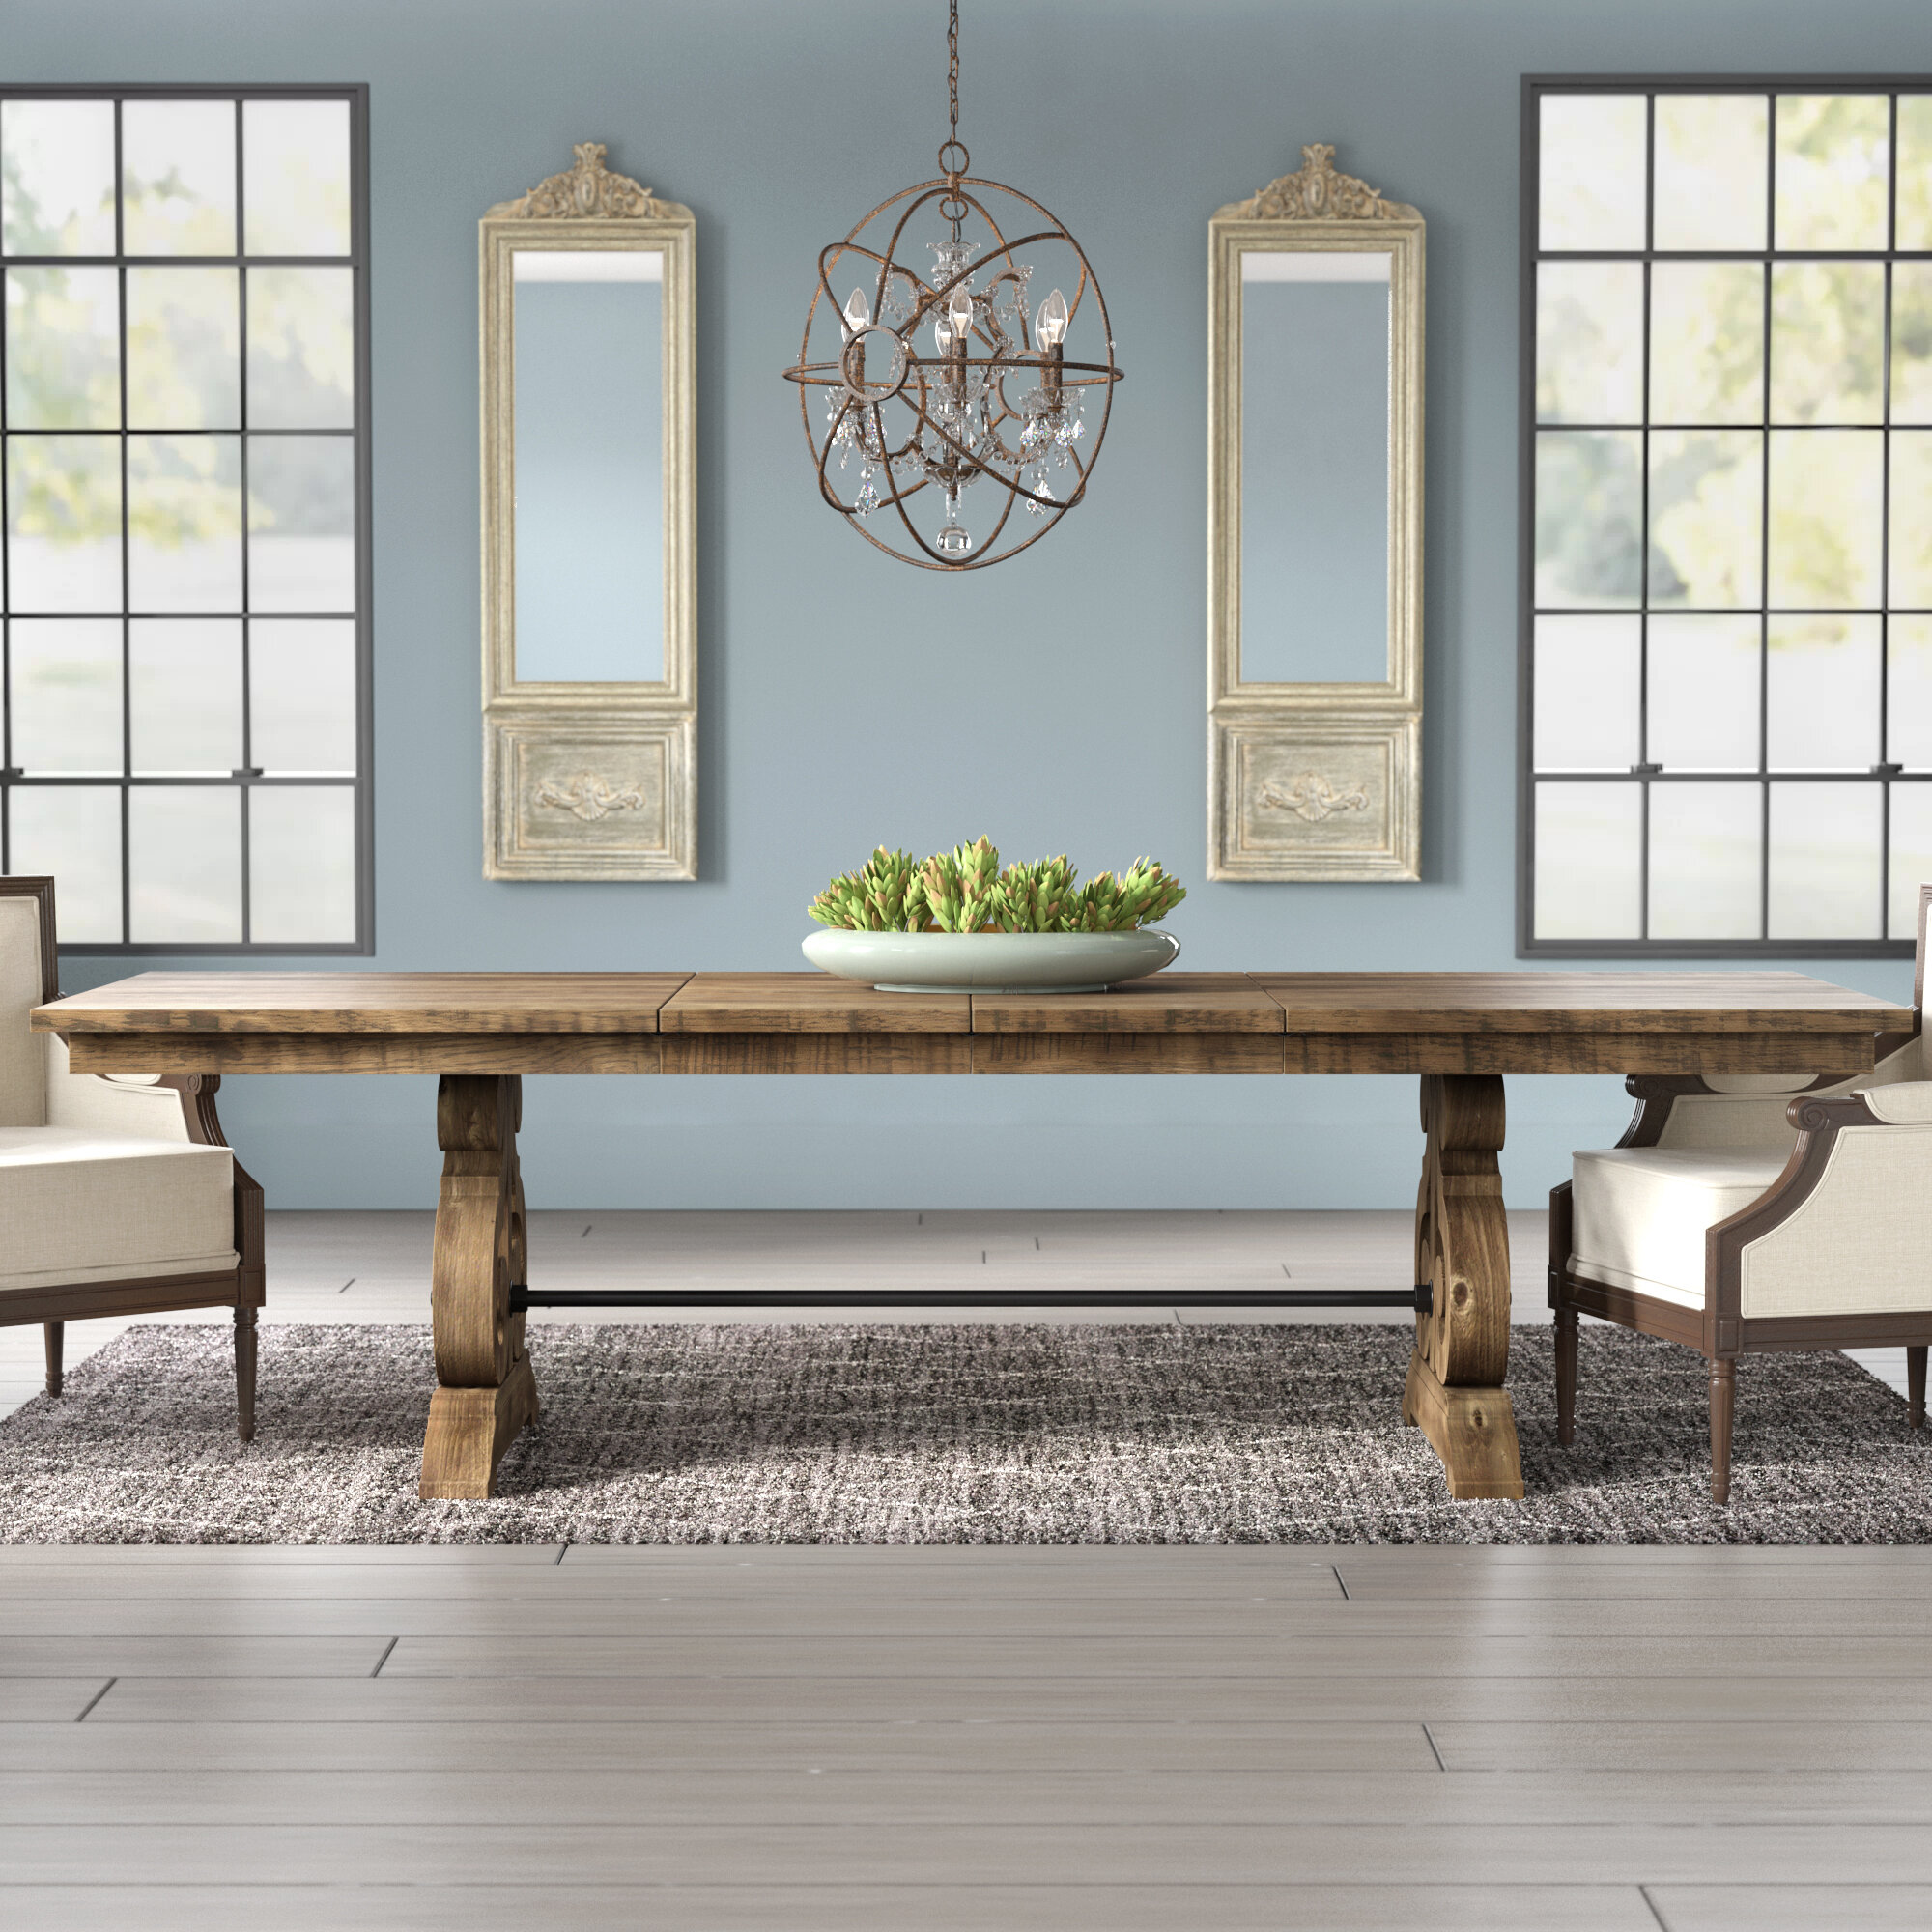 8 Person Seat Kitchen Dining Tables You Ll Love In 2020